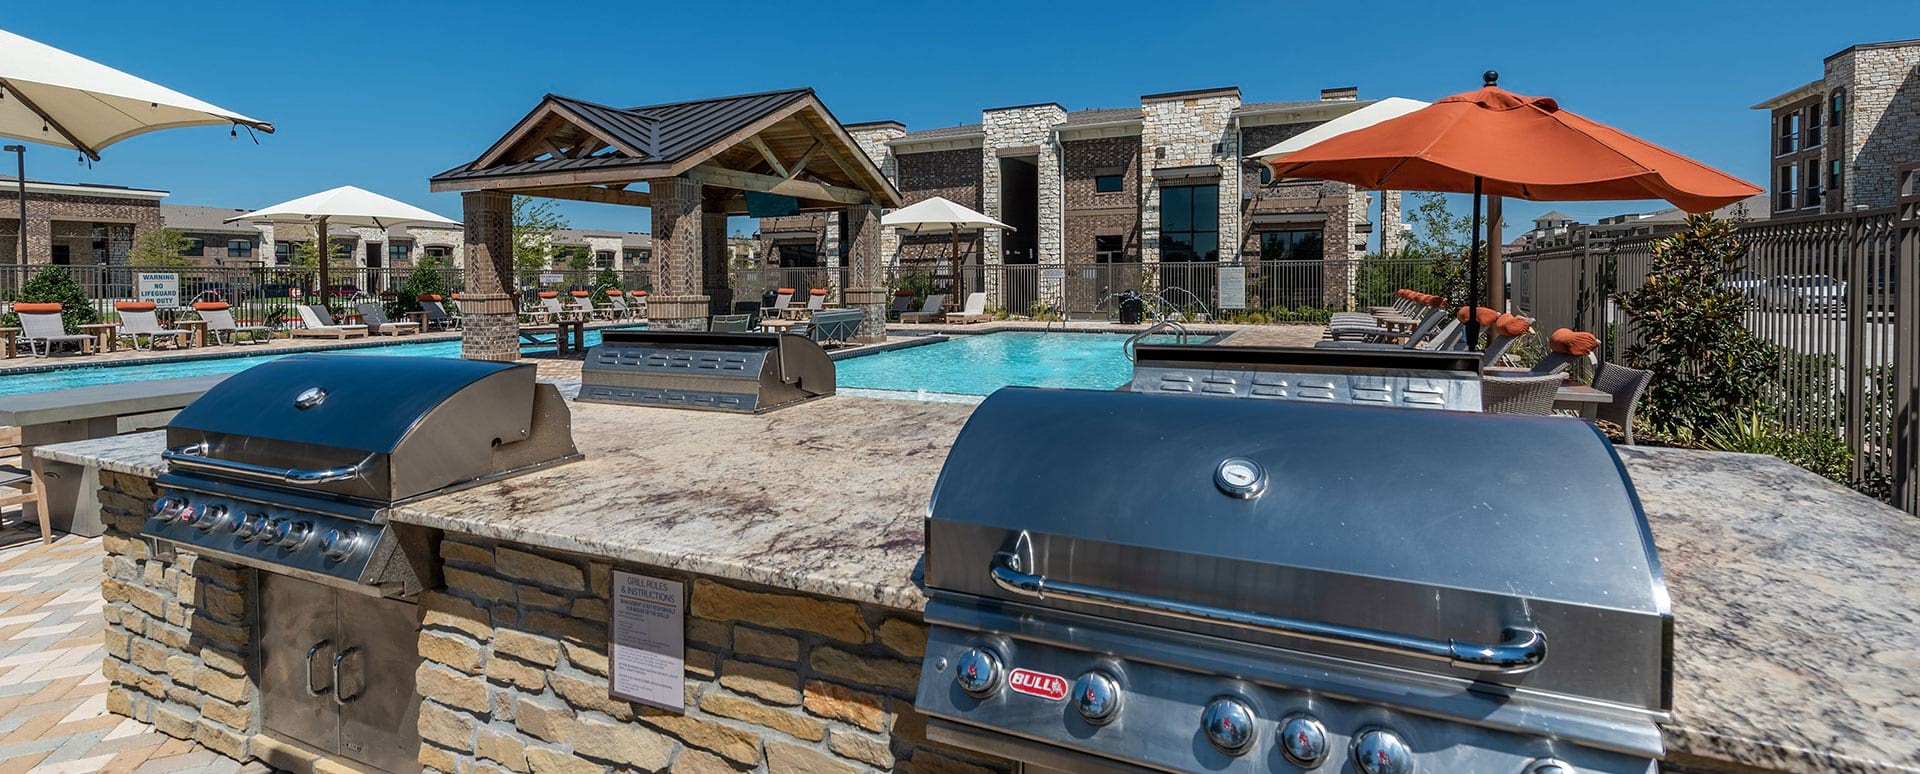 Outdoor gas grills at Cortland Phillips Creek Ranch